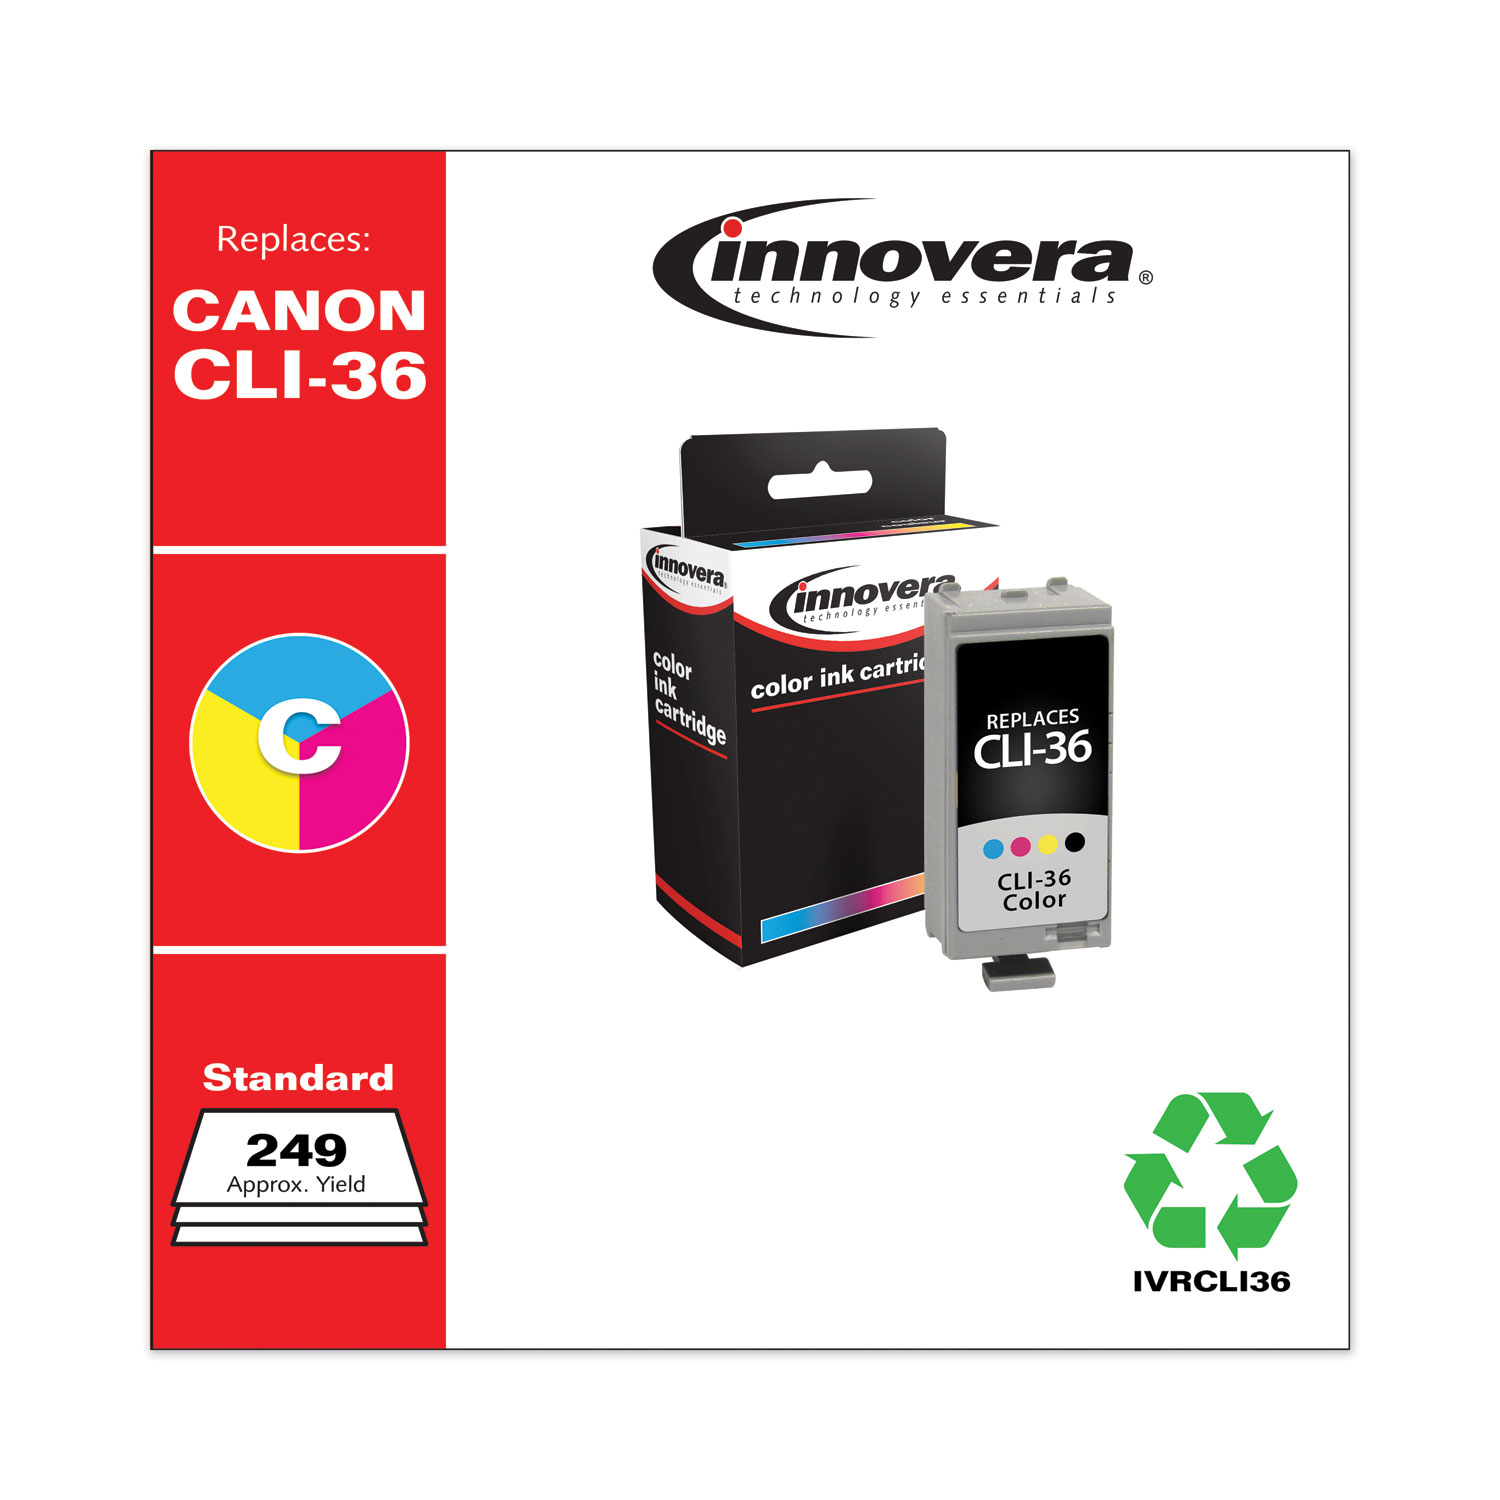 Remanufactured Tri-Color Ink, Replacement for Canon CLI-36 (1511B002), 249 Page-Yield IVRCLI36